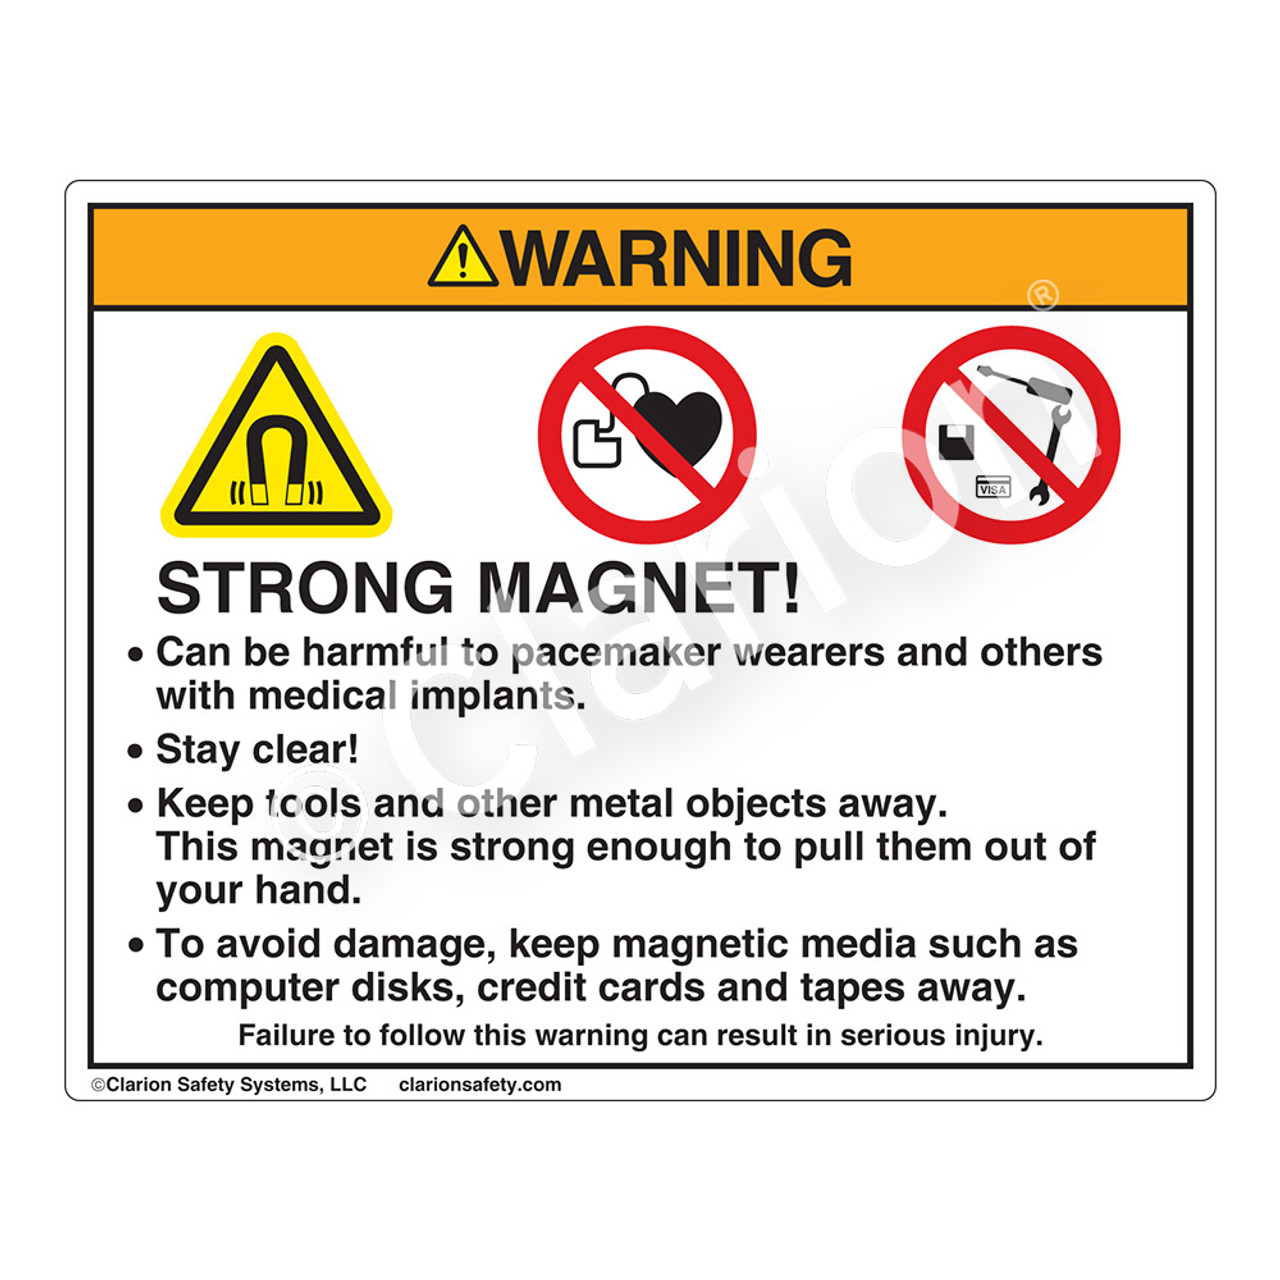 Warning/Strong Magnet (HMS-J73WH-) | Clarion Safety ...